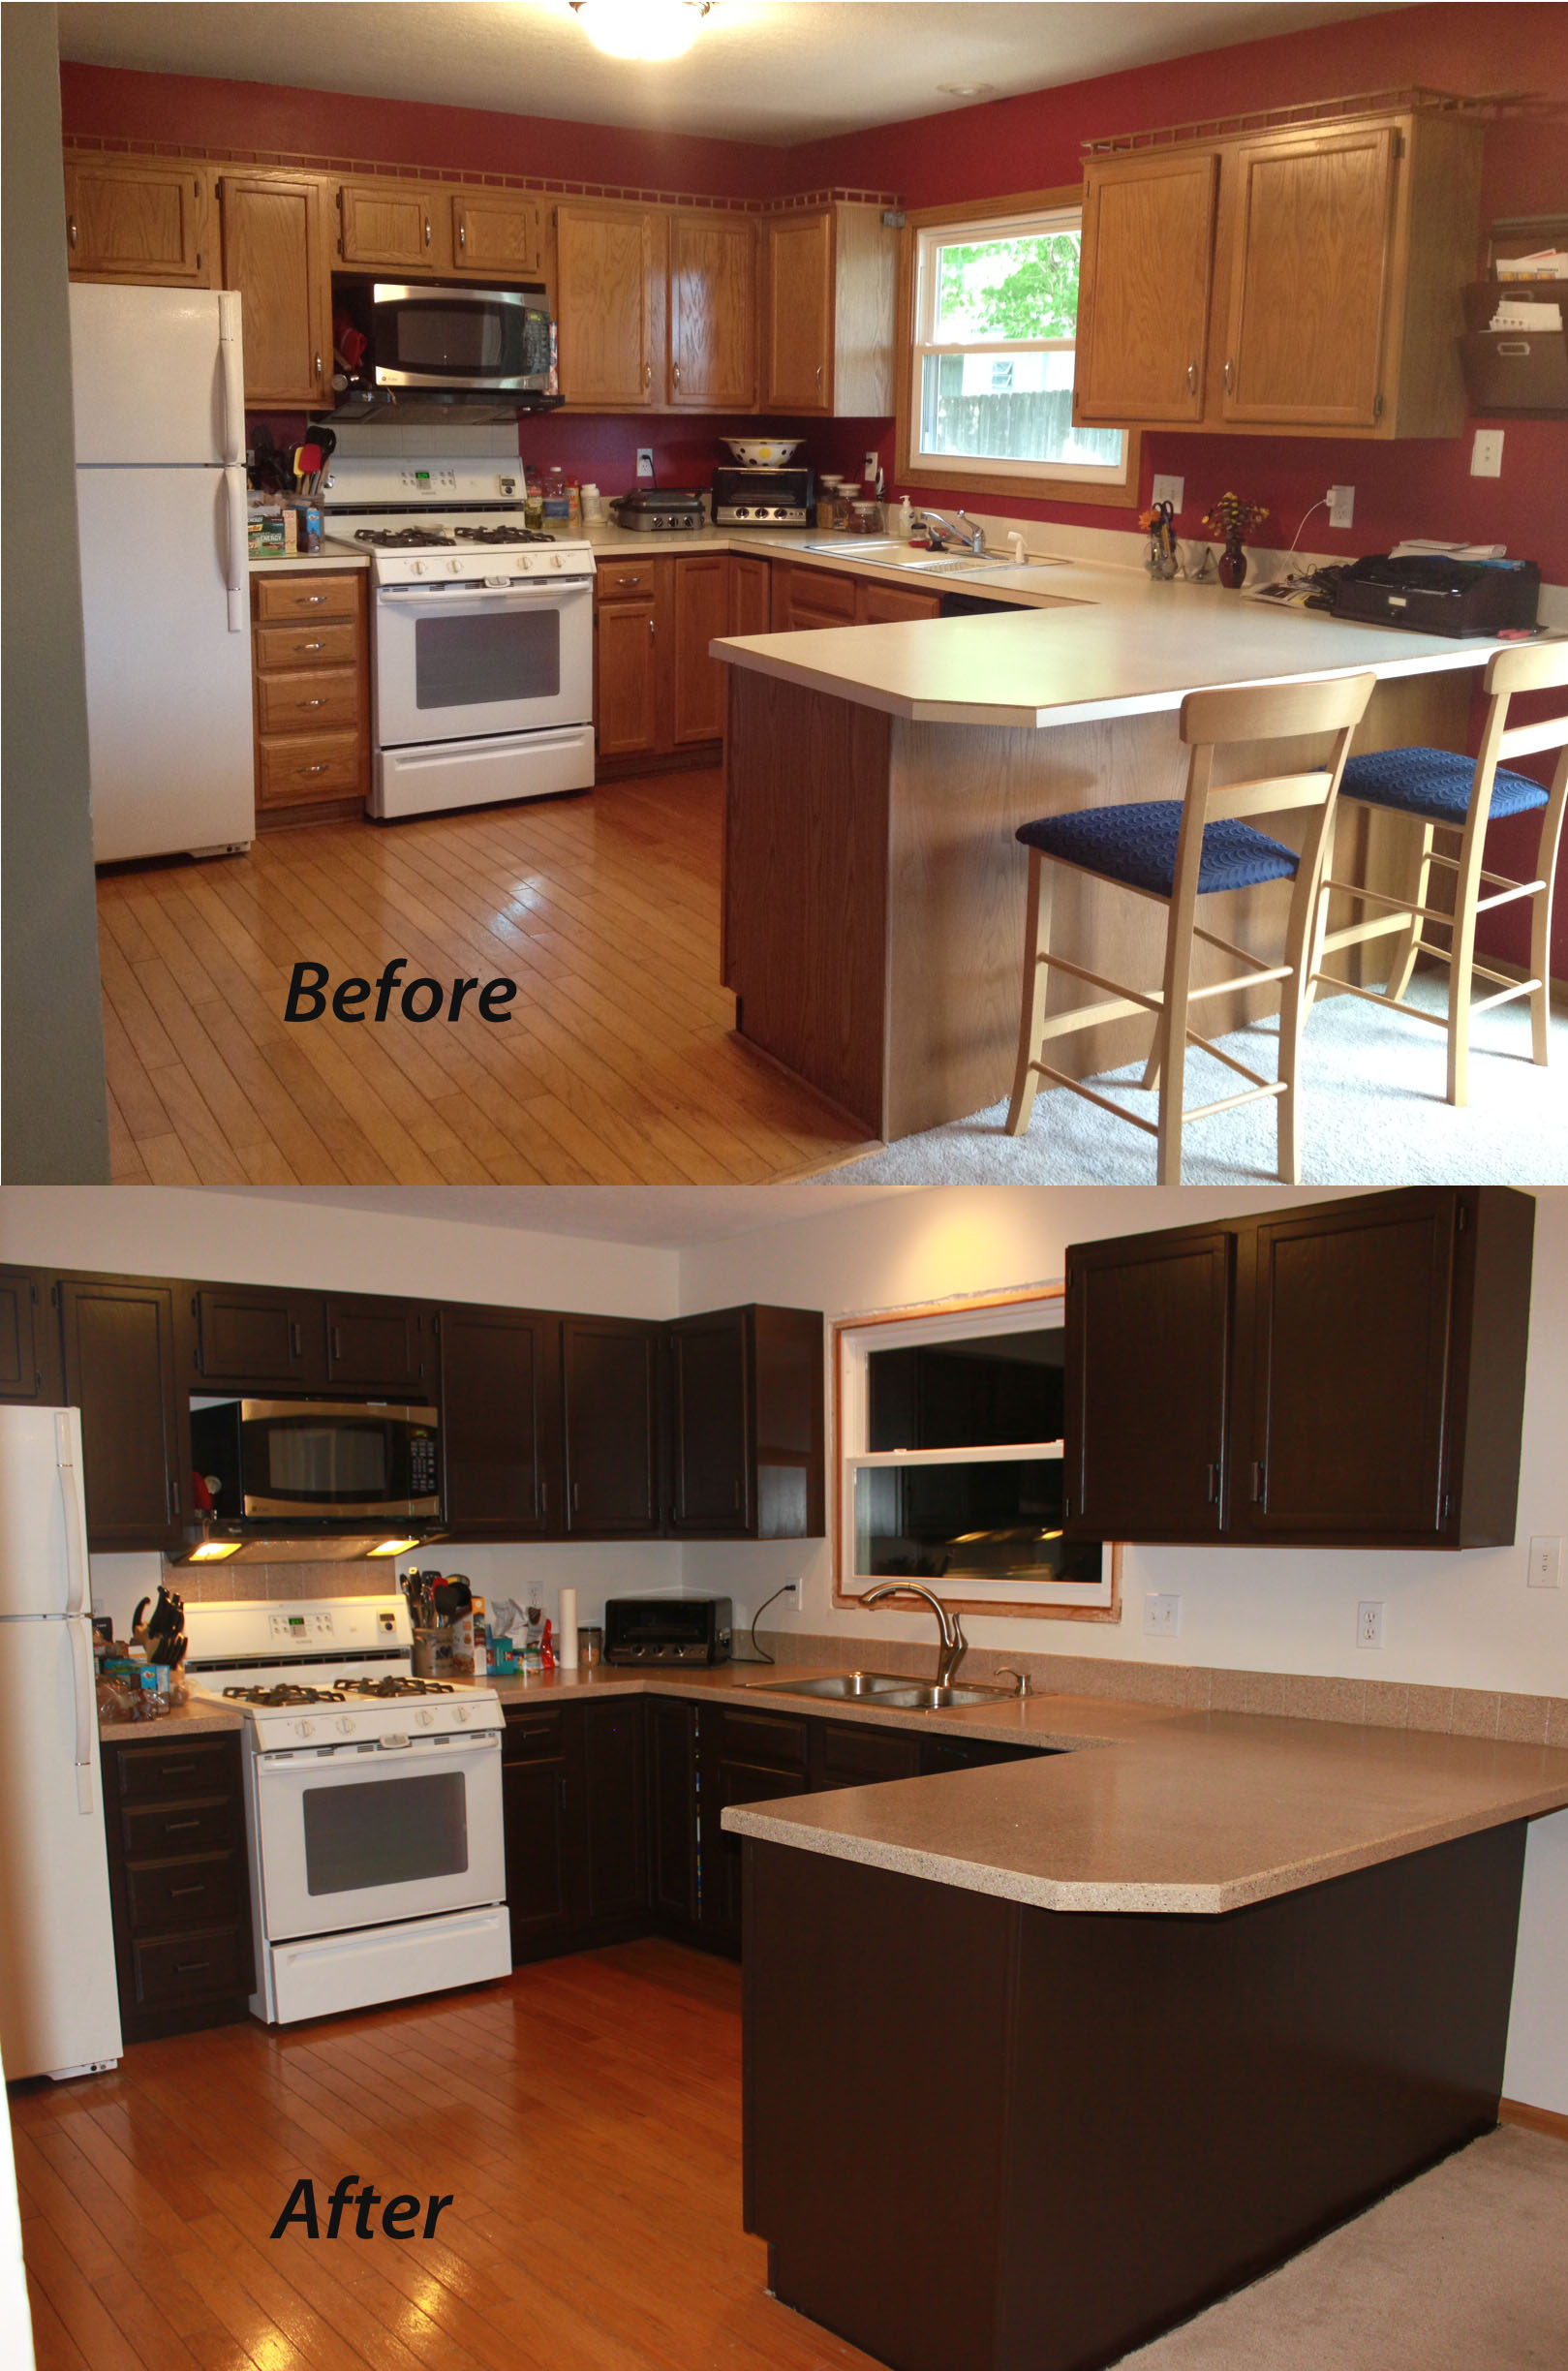 Painting kitchen cabinets sometimes homemade for Before and after painting kitchen cabinets white